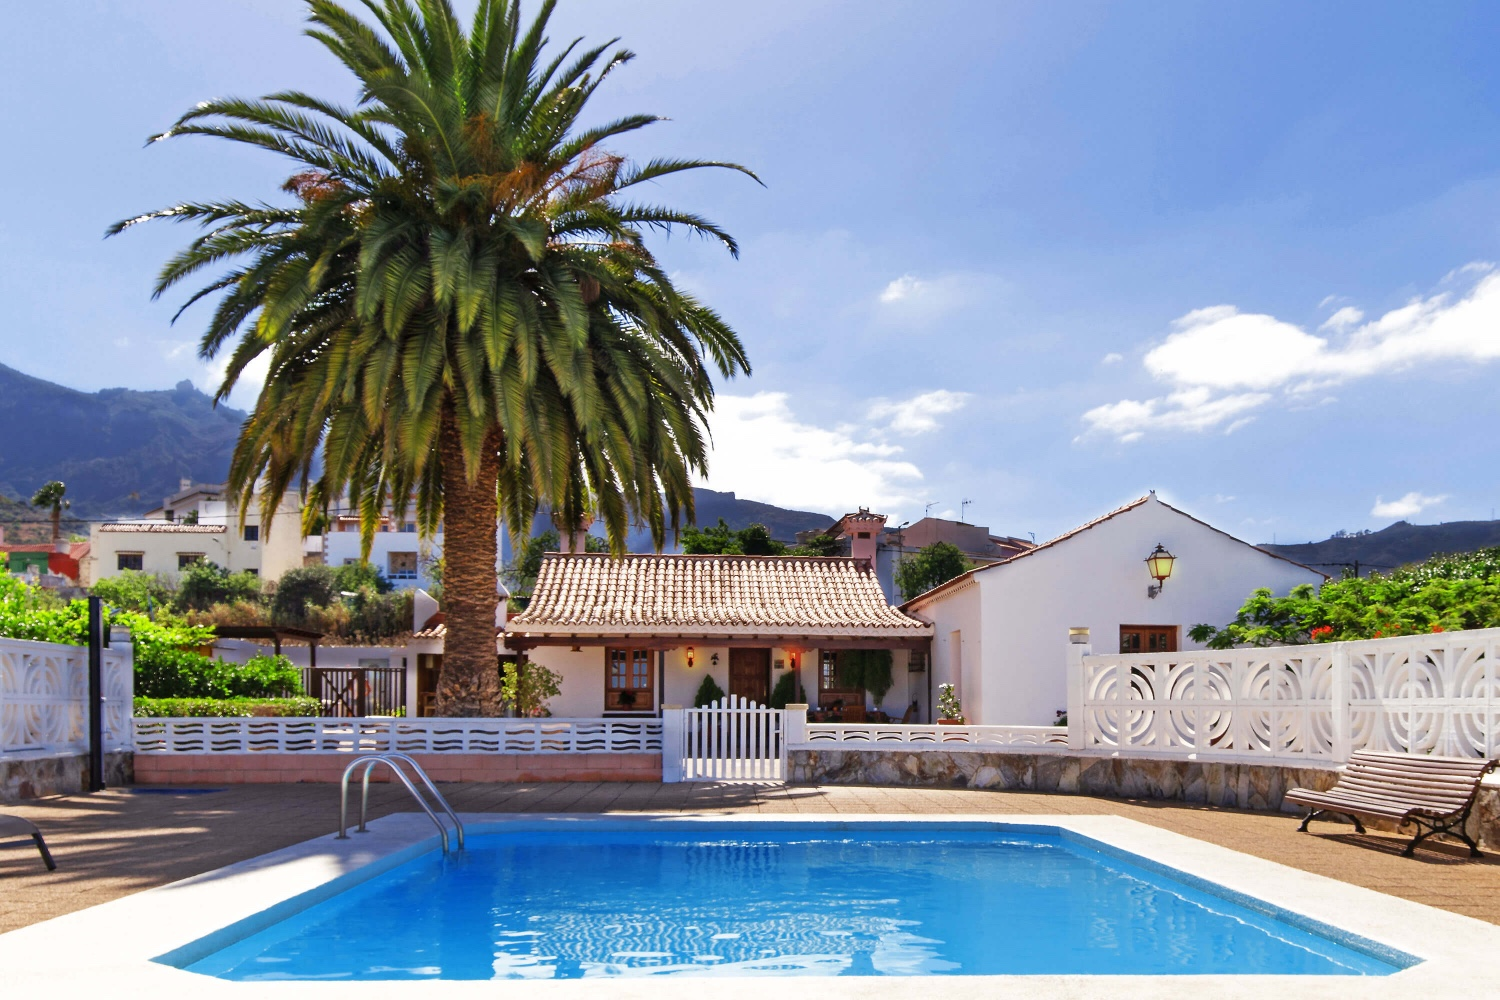 Traditional style villa with private pool located in the beautiful natural surroundings of the center of Gran Canaria